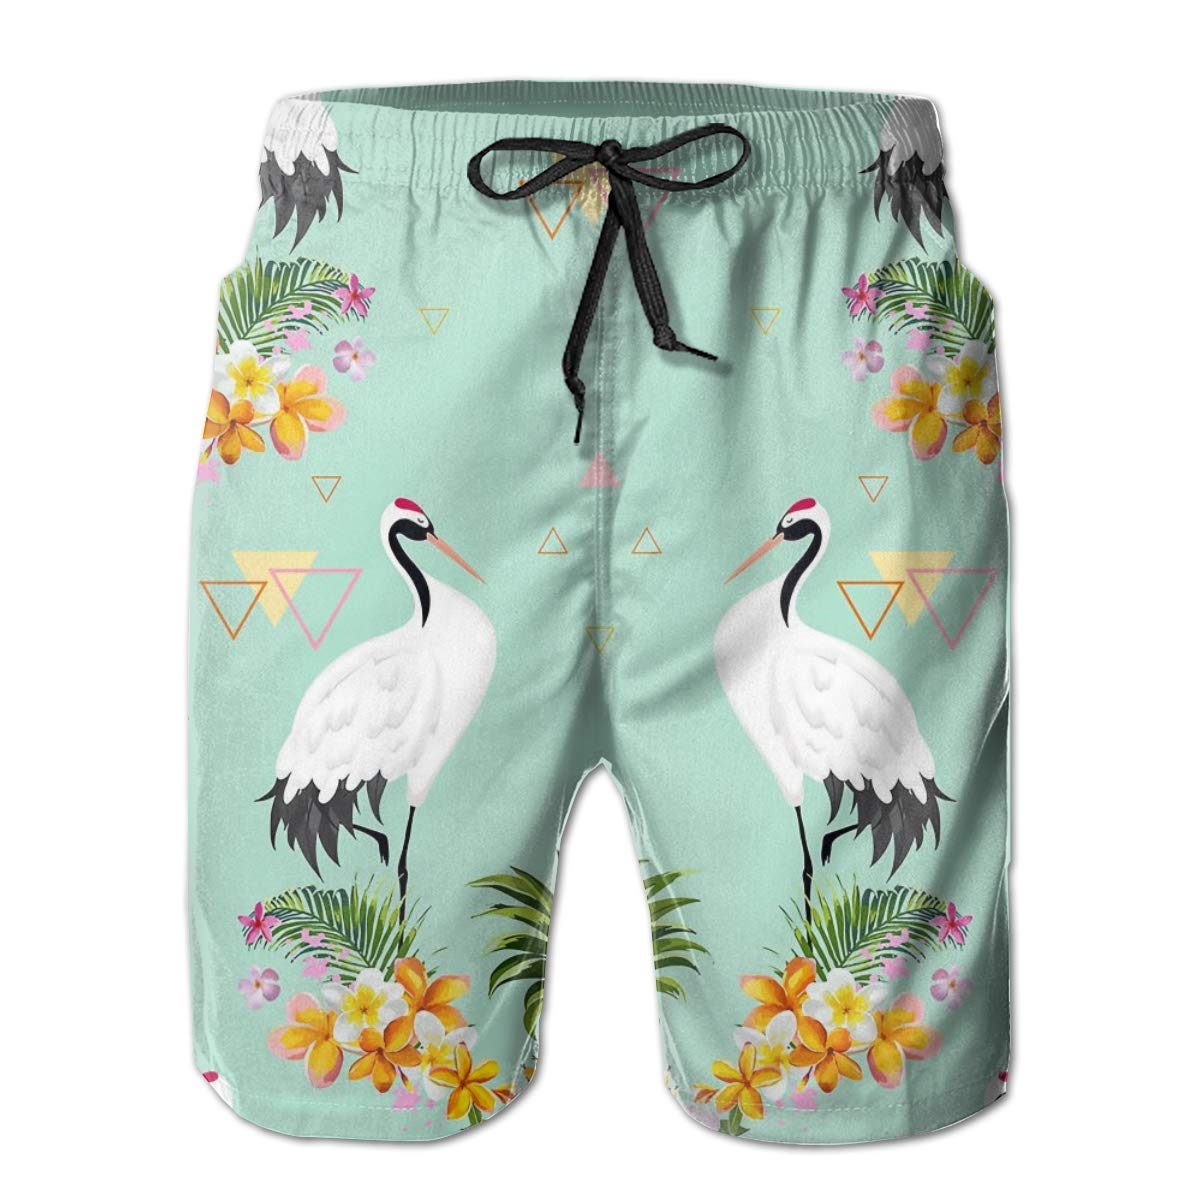 SARA NELL Mens Shorts Japanese Cranes and Flowers Quick Dry Swim Trunks Beach Board Shorts